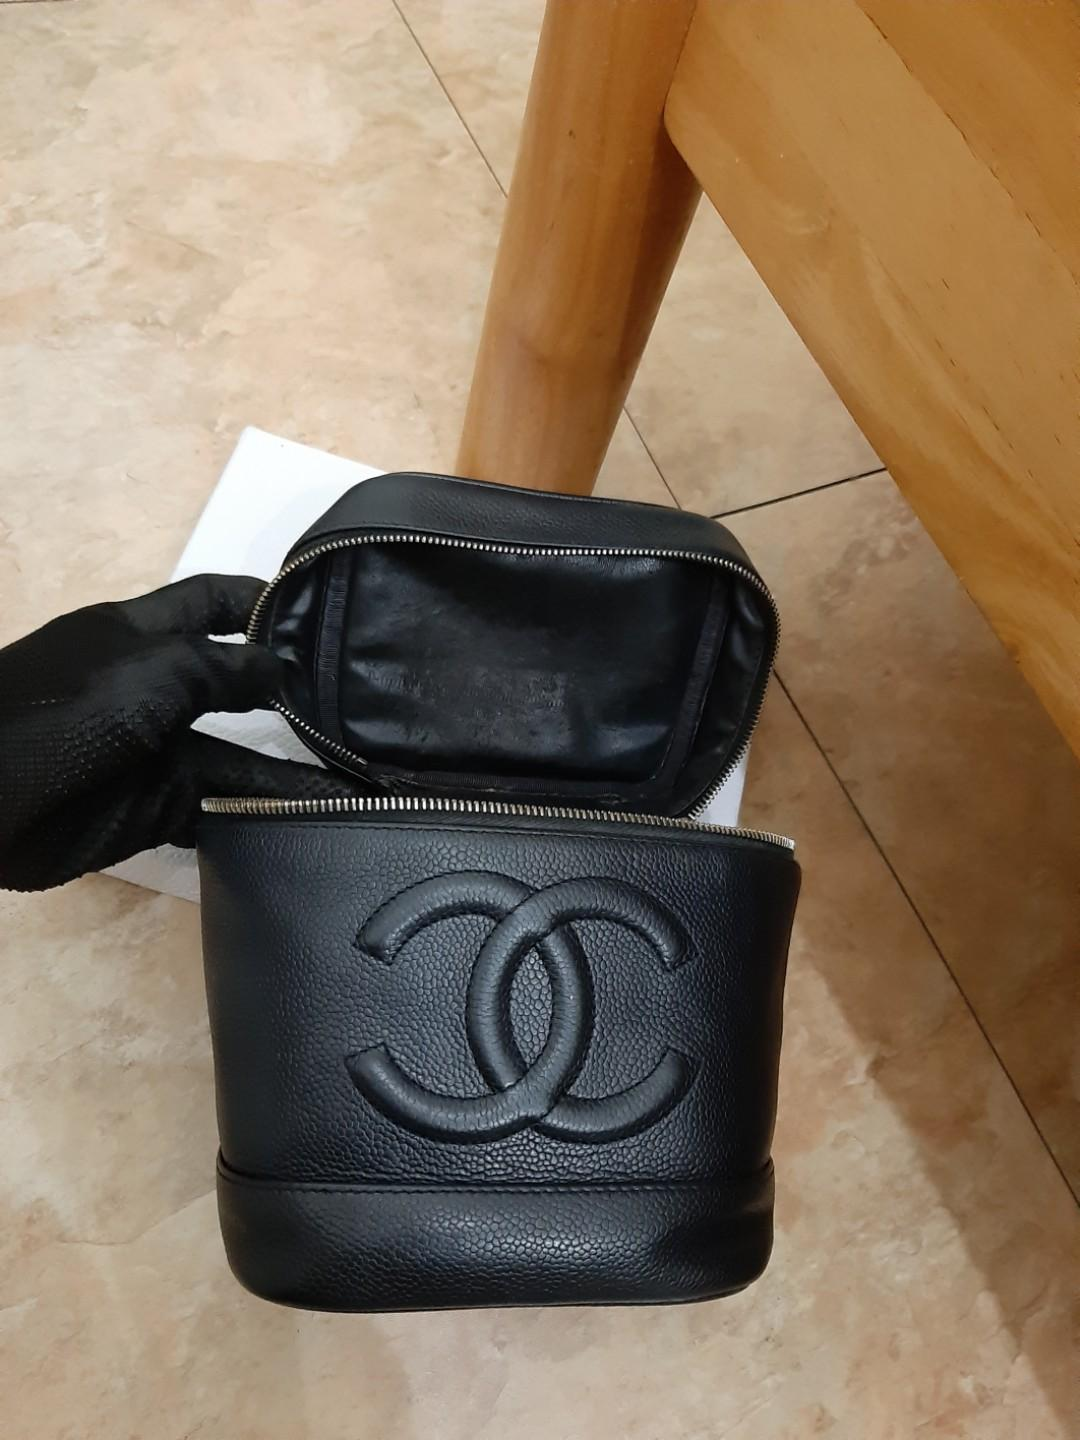 AUTHENTIC CHANEL TALL BLACK CAVIAR LEATHER VANITY BAG - GOLD HARDWARE - BIG CC LOGO DESIGN - SOLID SHAPE - EXTERIOR CAVIAR LEATHER STILL  GOOD, INTERIOR CAN BE CLEANED AT BAGSPA - KEYRING ZIP PULL- COMES WITH EXTRA LONG CHAIN STRAP FOR CROSSBODY SLING -